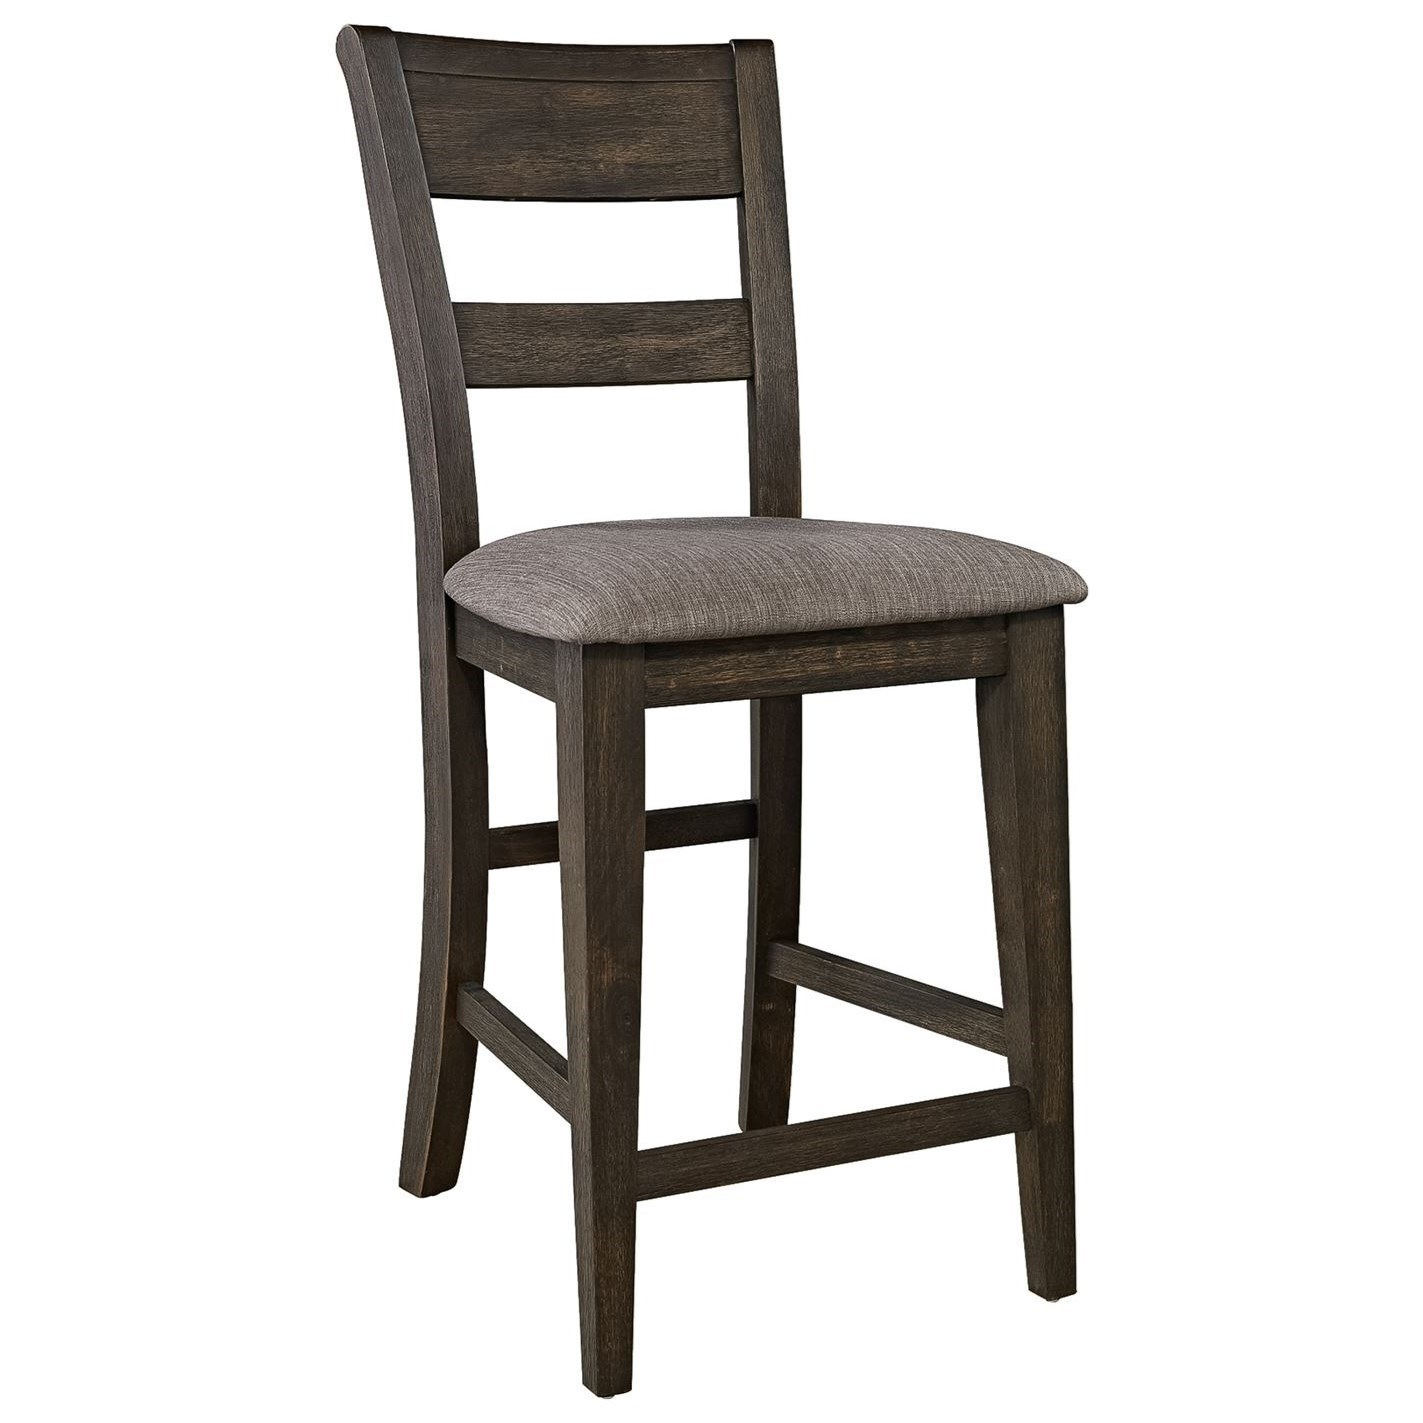 Double Bridge Counter Chair by Libby at Walker's Furniture